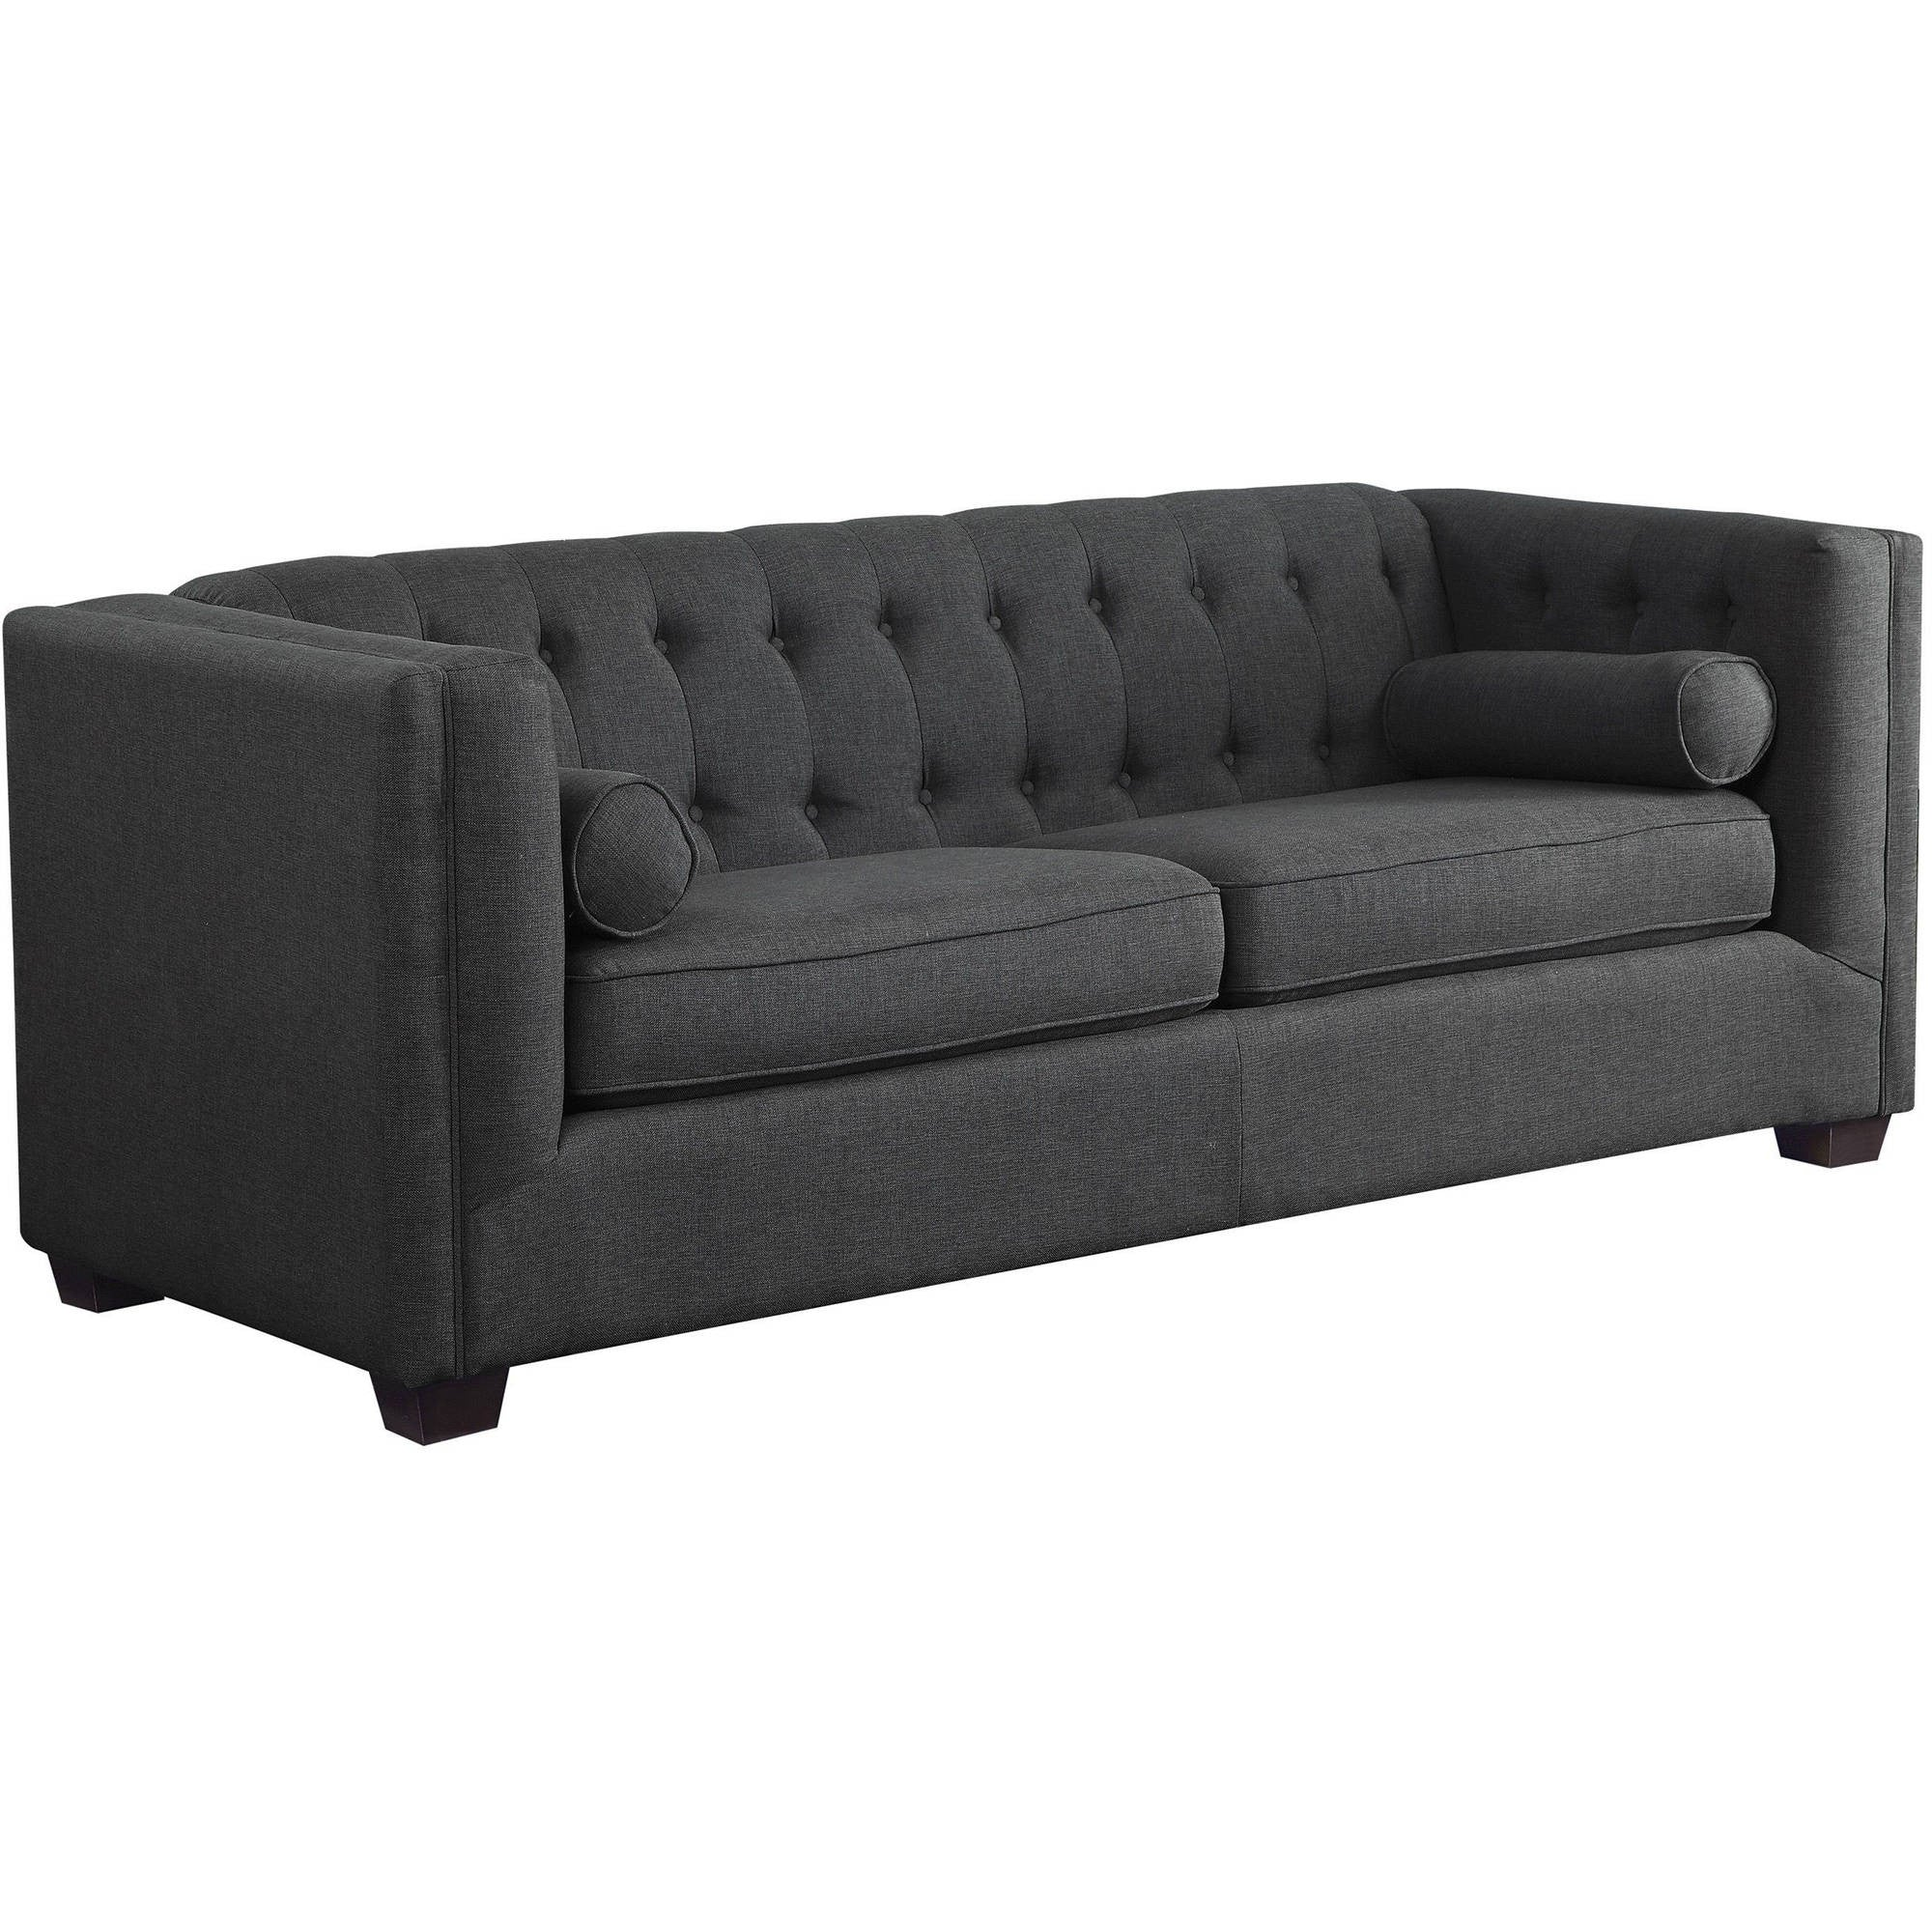 Carins Transitional Sofa Also Available In Beige Interior Gallerie ~ What Is A Transitional Sofa